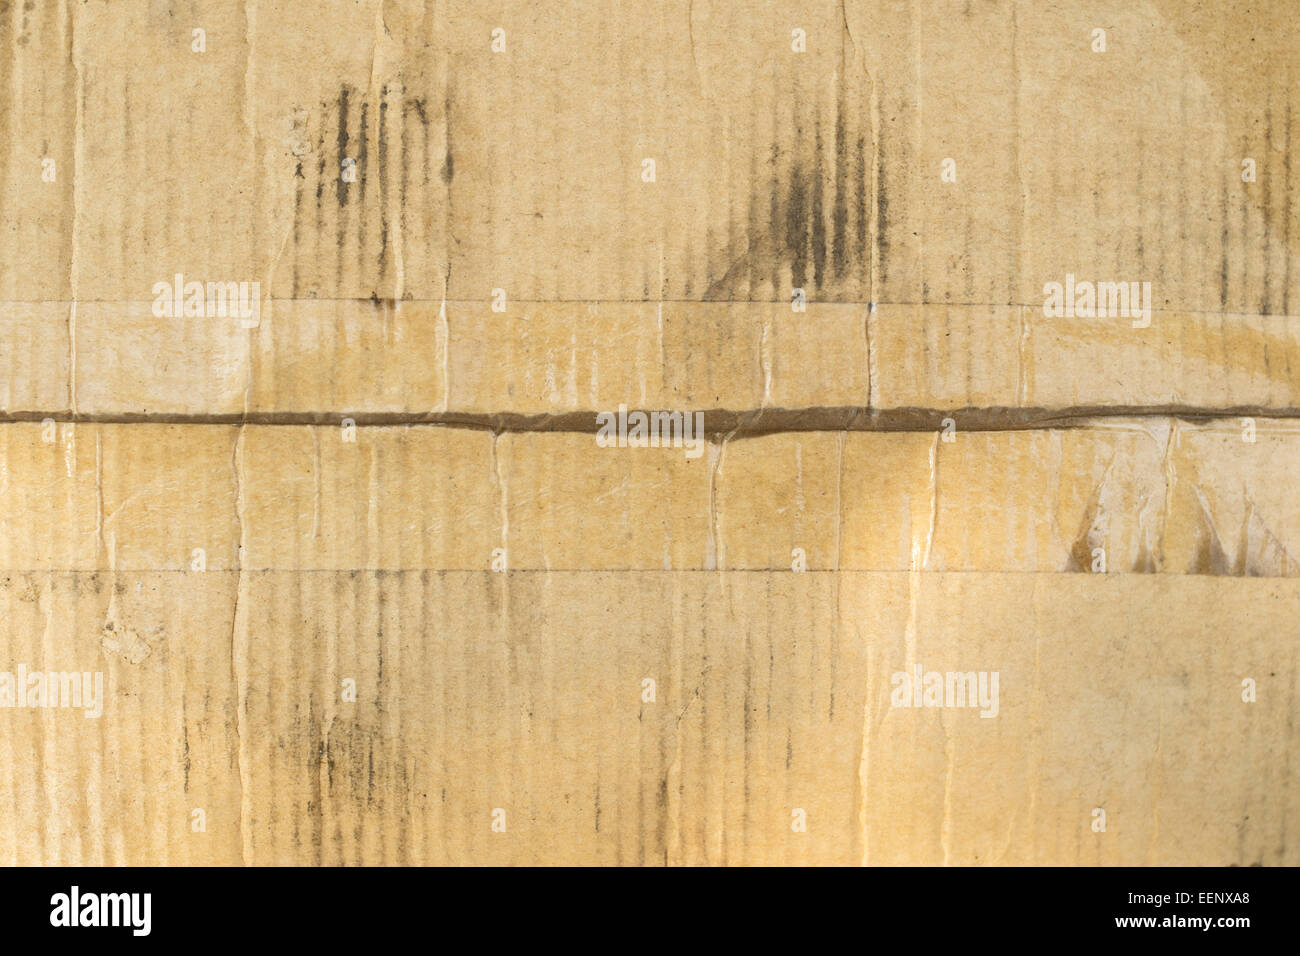 Dirty Cardboard Box With Clear Adhesive Tape Stock Photo